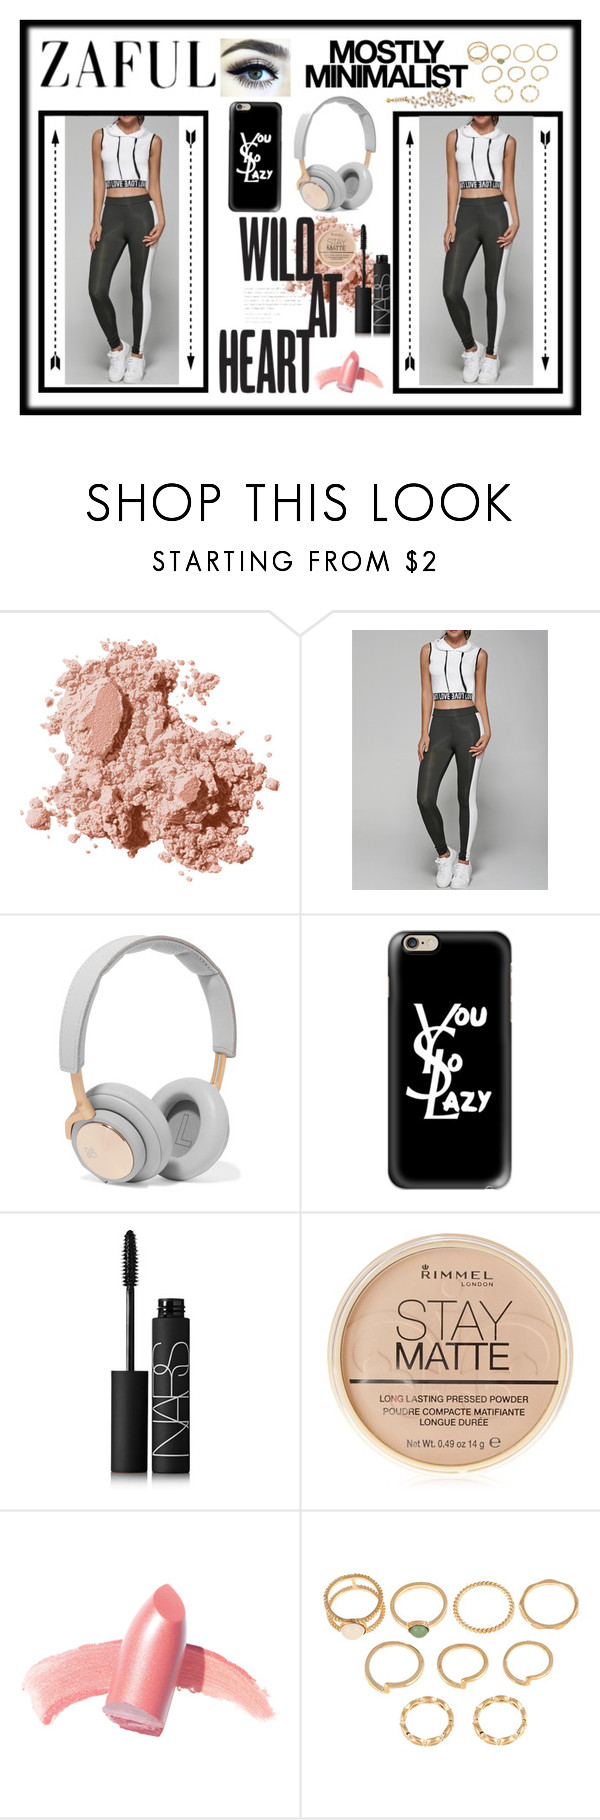 """""""Mostly Minilist"""" by rhiannonpsayer ❤ liked on Polyvore featuring Bobbi Brown Cosmetics, B&O Play, Casetify, NARS Cosmetics, Rimmel, Elizabeth Arden, Serfontaine and Lulu Frost"""